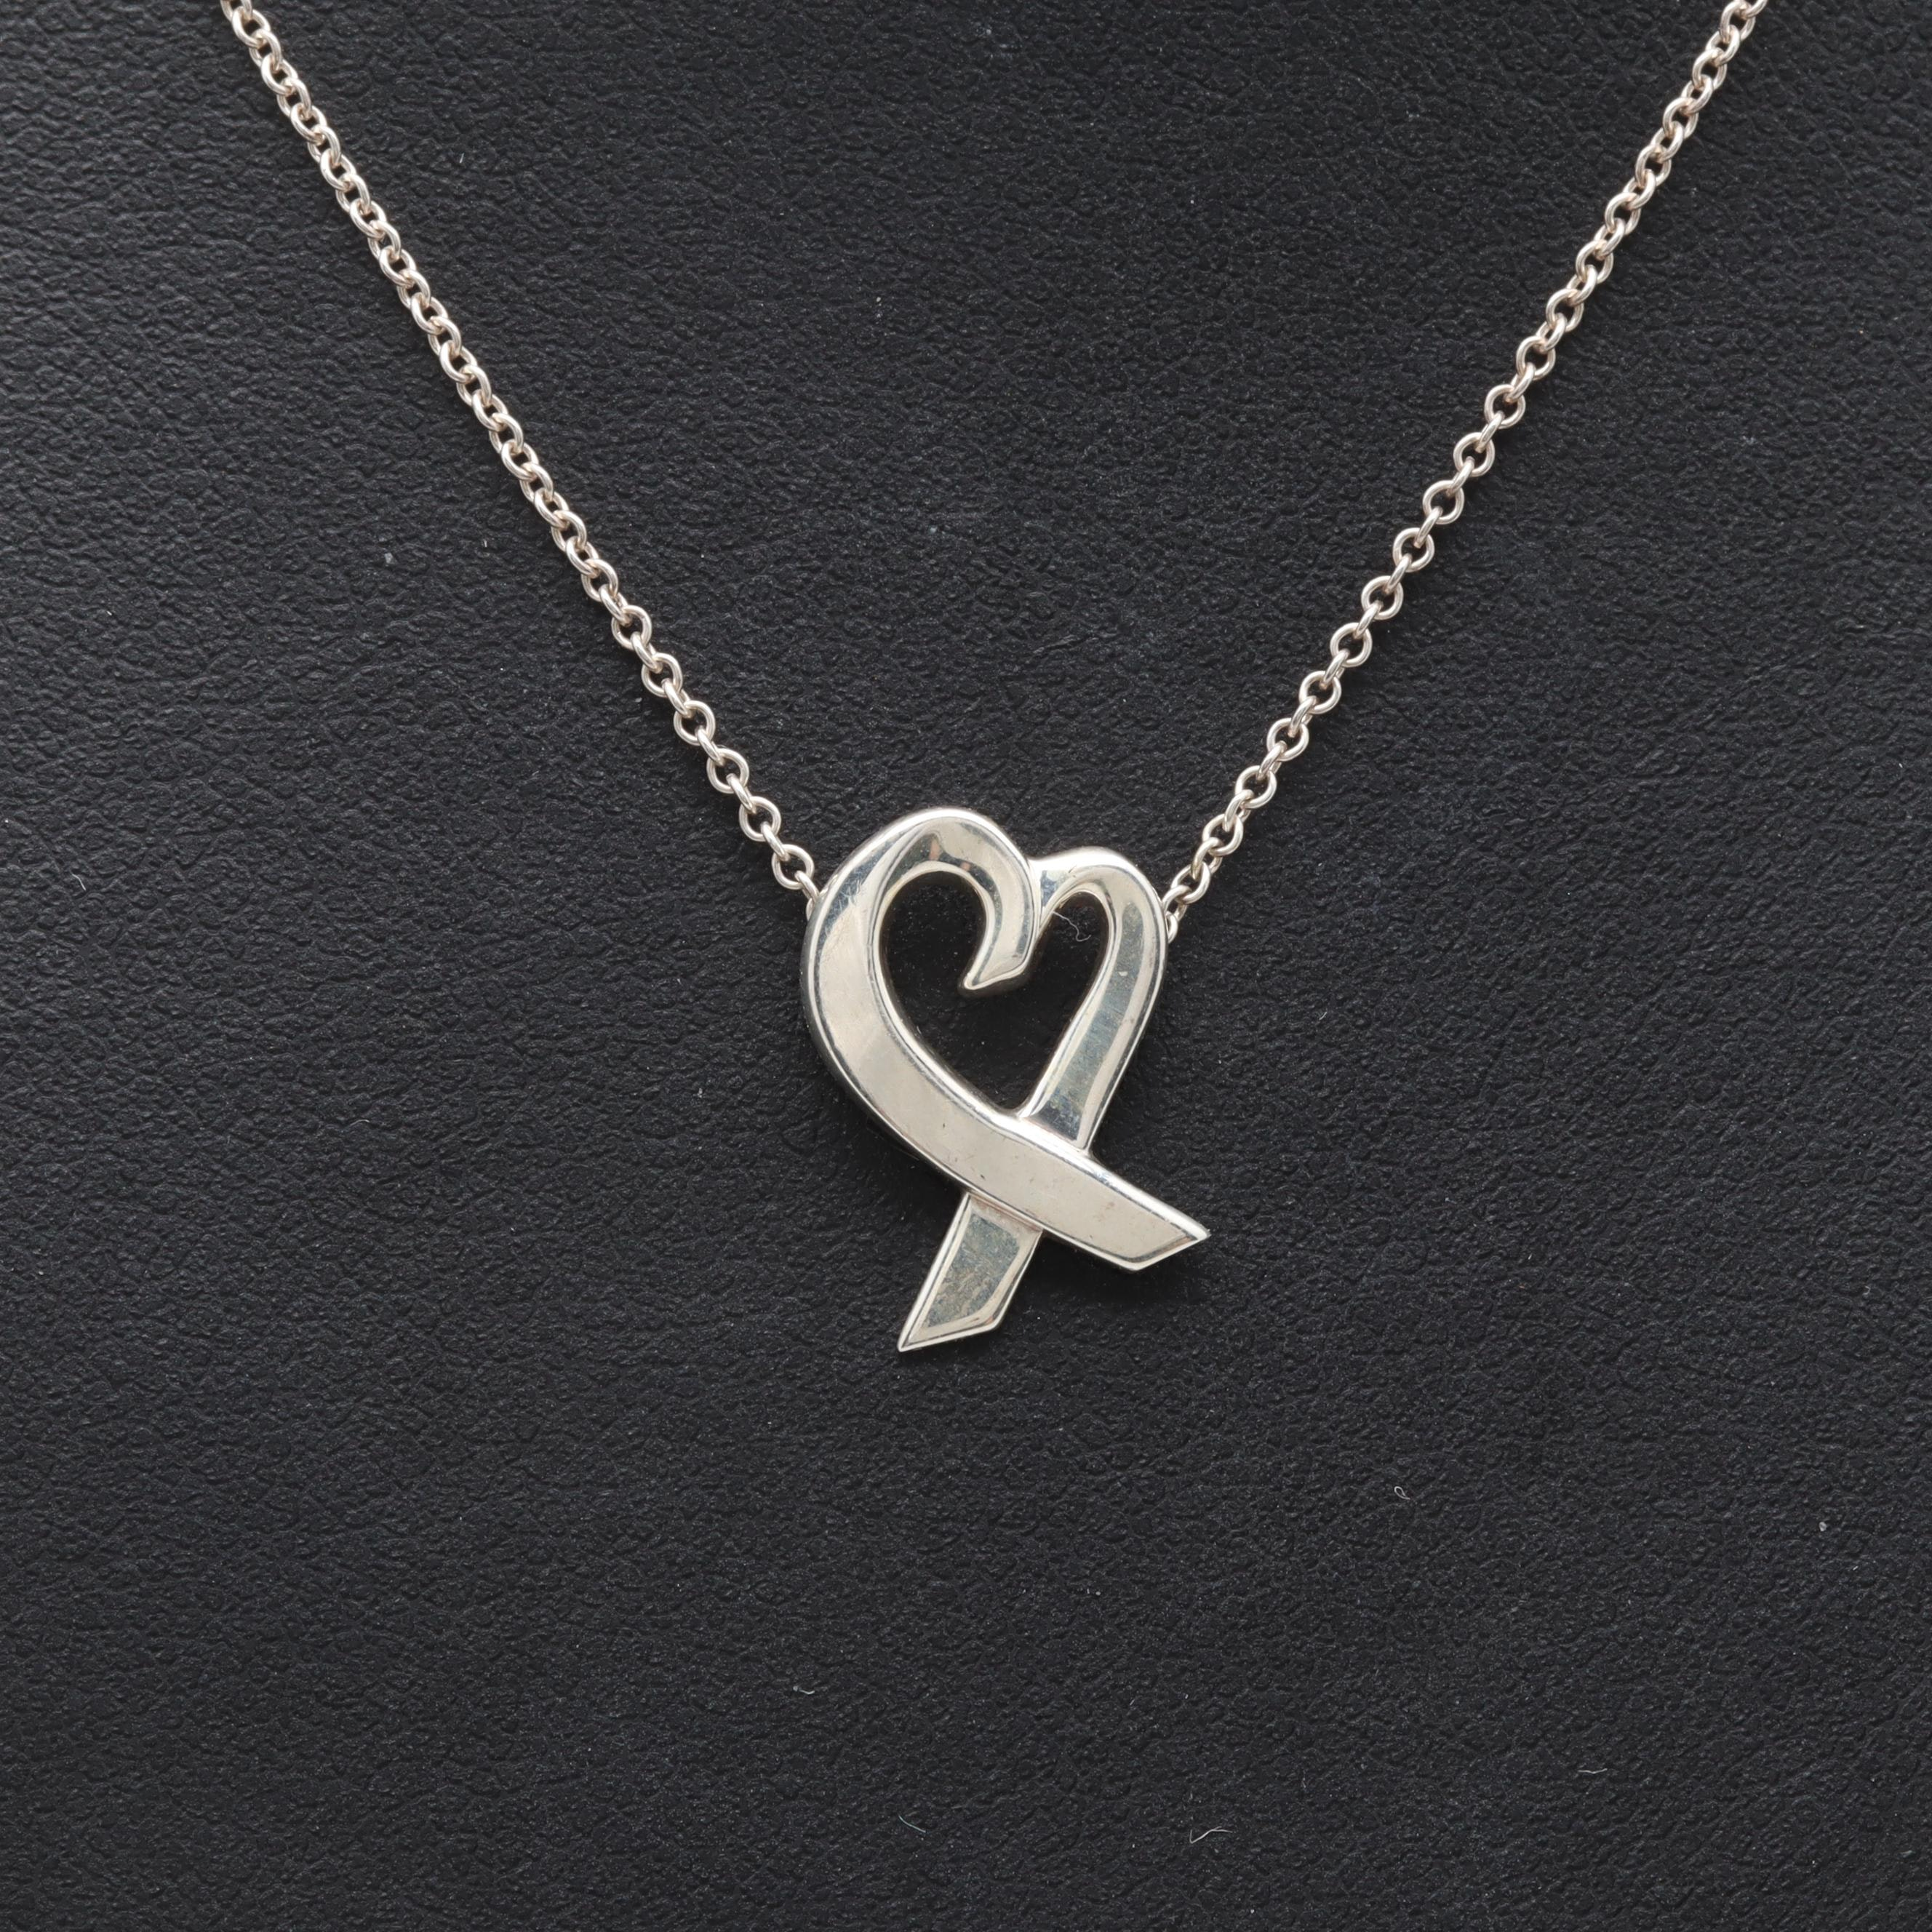 Paloma Picasso for Tiffany & Co. Sterling Silver Heart Ribbon Pendant Necklace